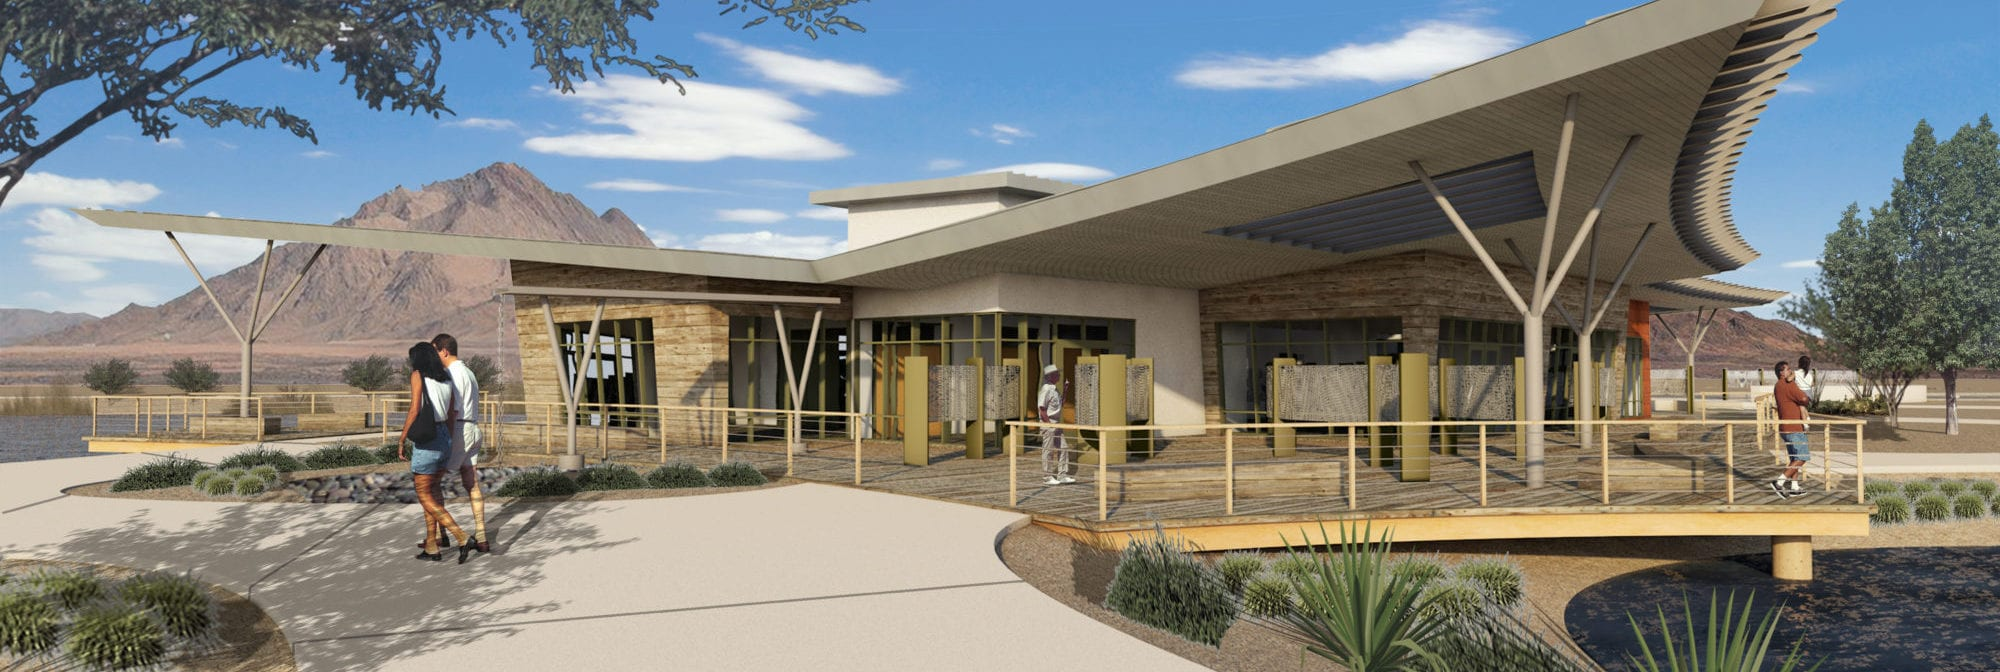 A rendering for the new building at the Henderson Bird Viewing Preserve, designed by LGA Architecture